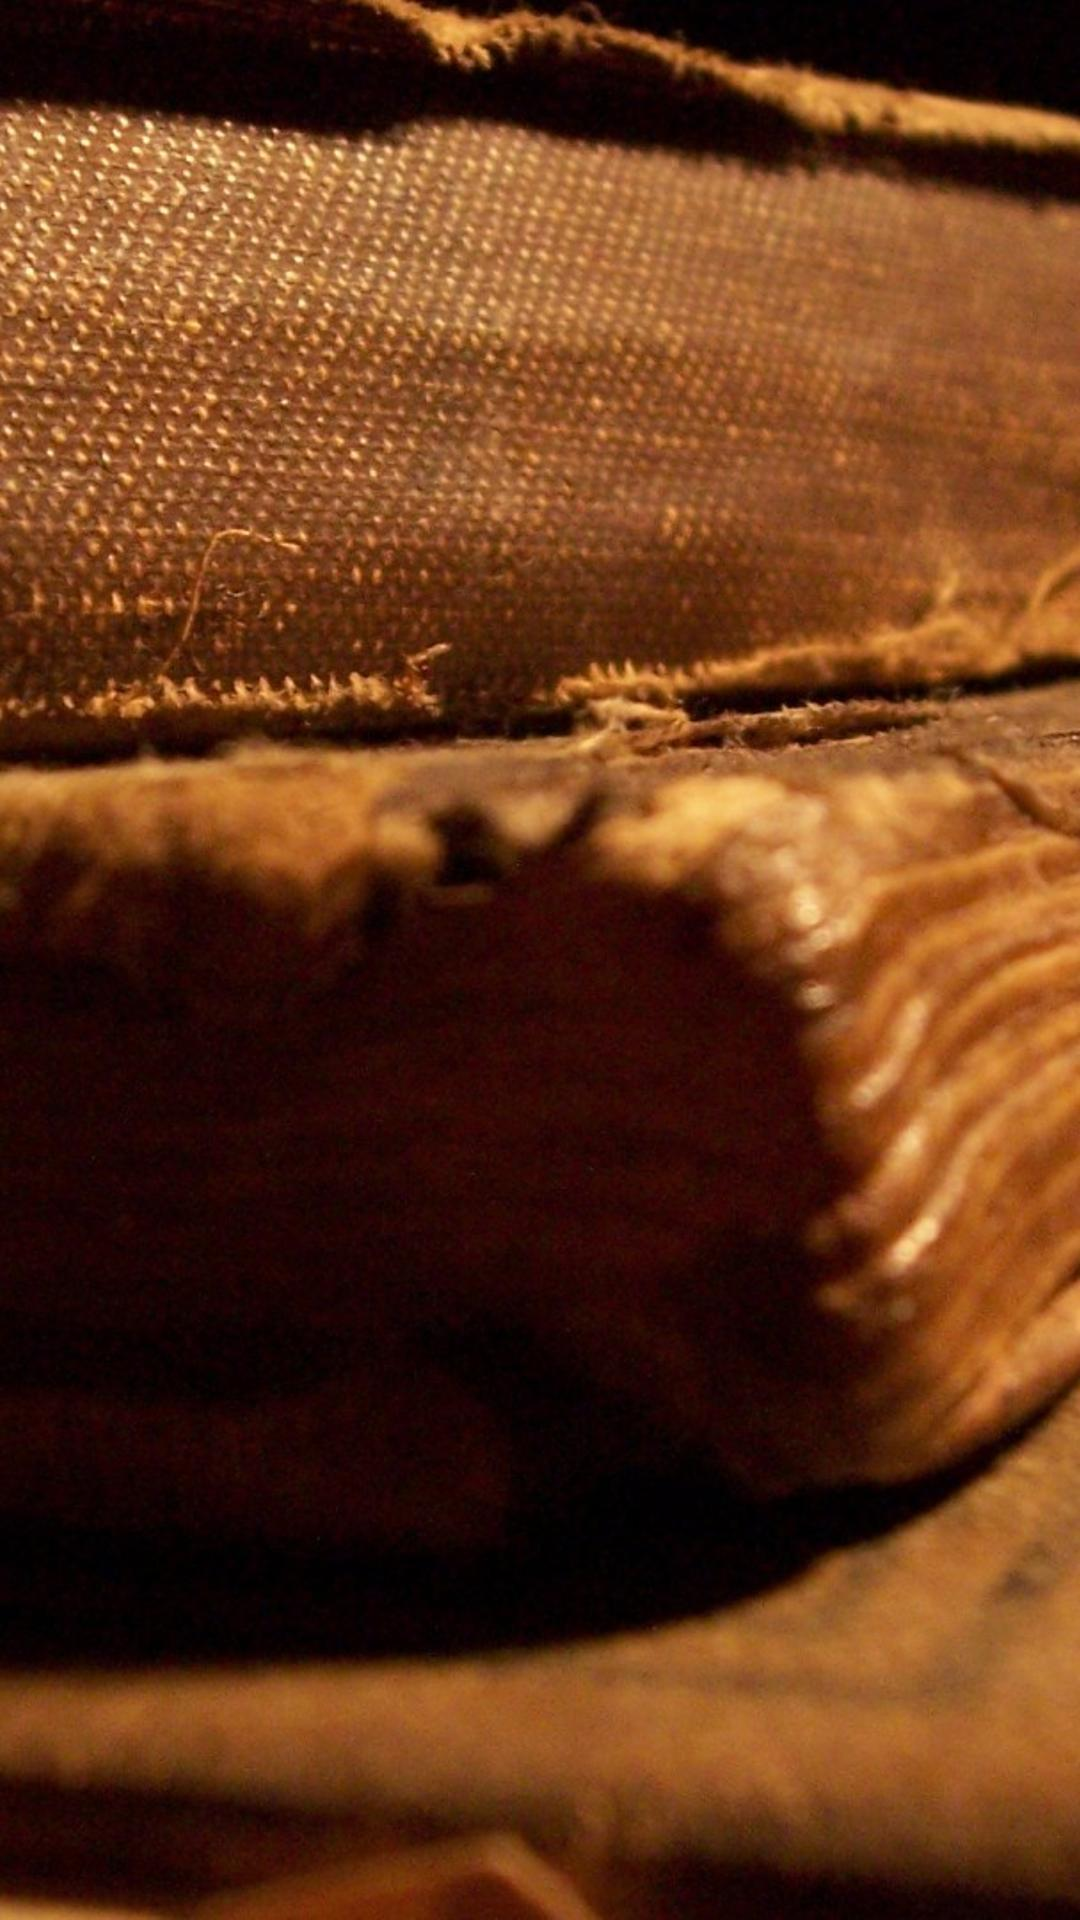 old books full with history - macro hd wallpaper wallpaper download